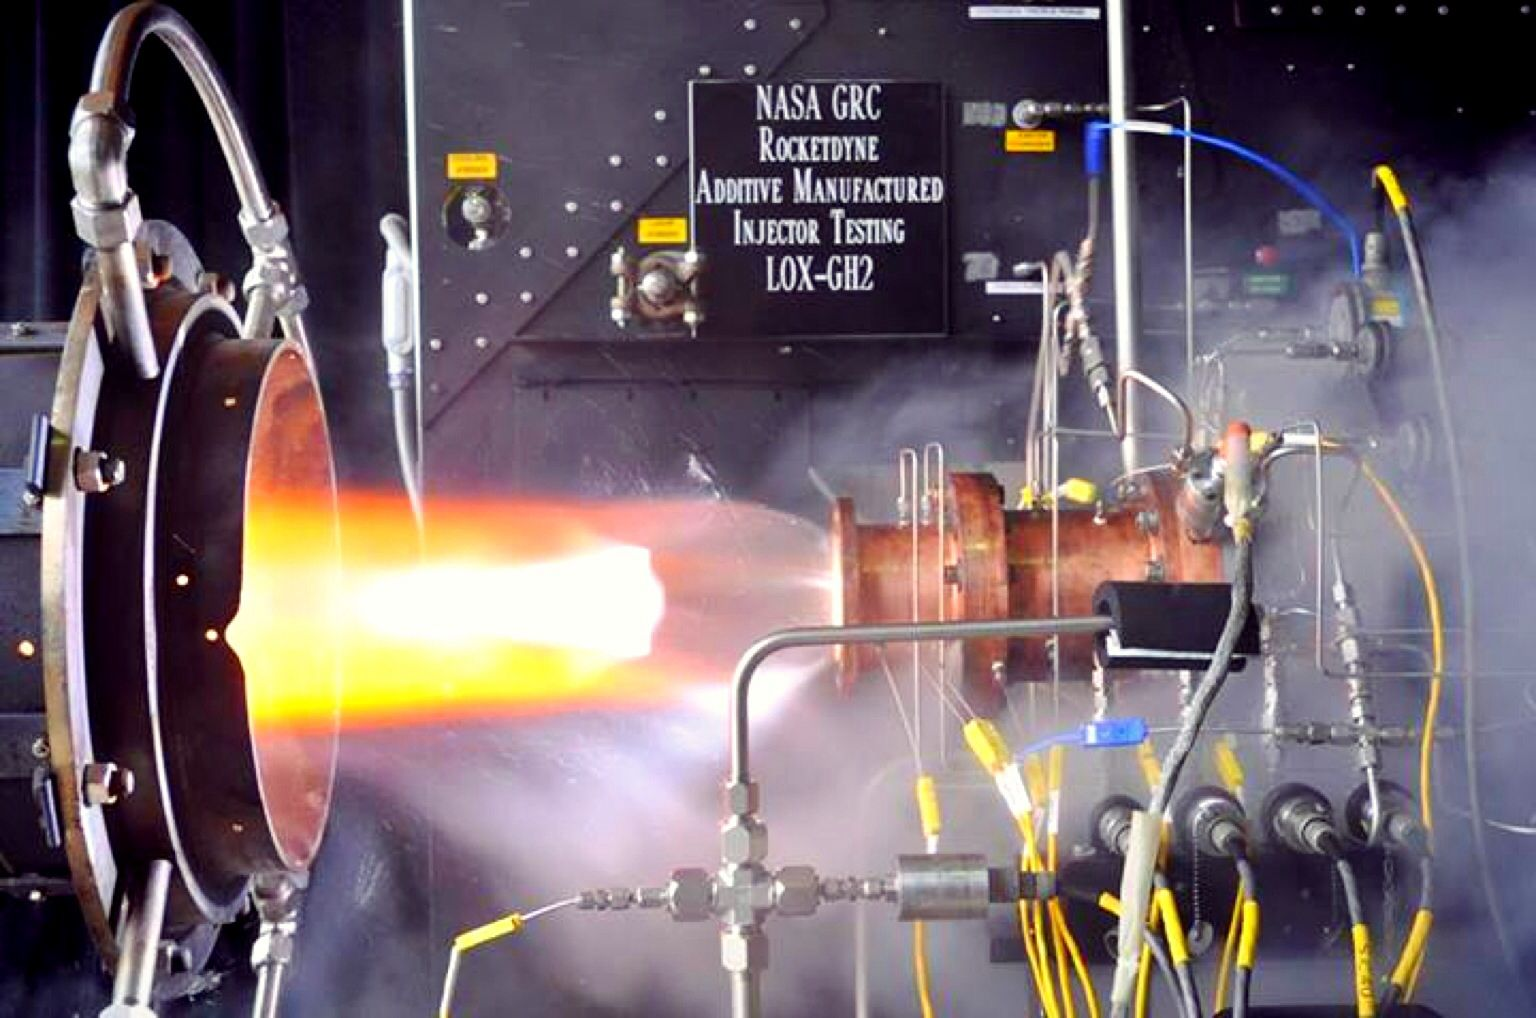 NASA has successfully tested 3D printed rocket components: http://cnet.co/1aNLQt7